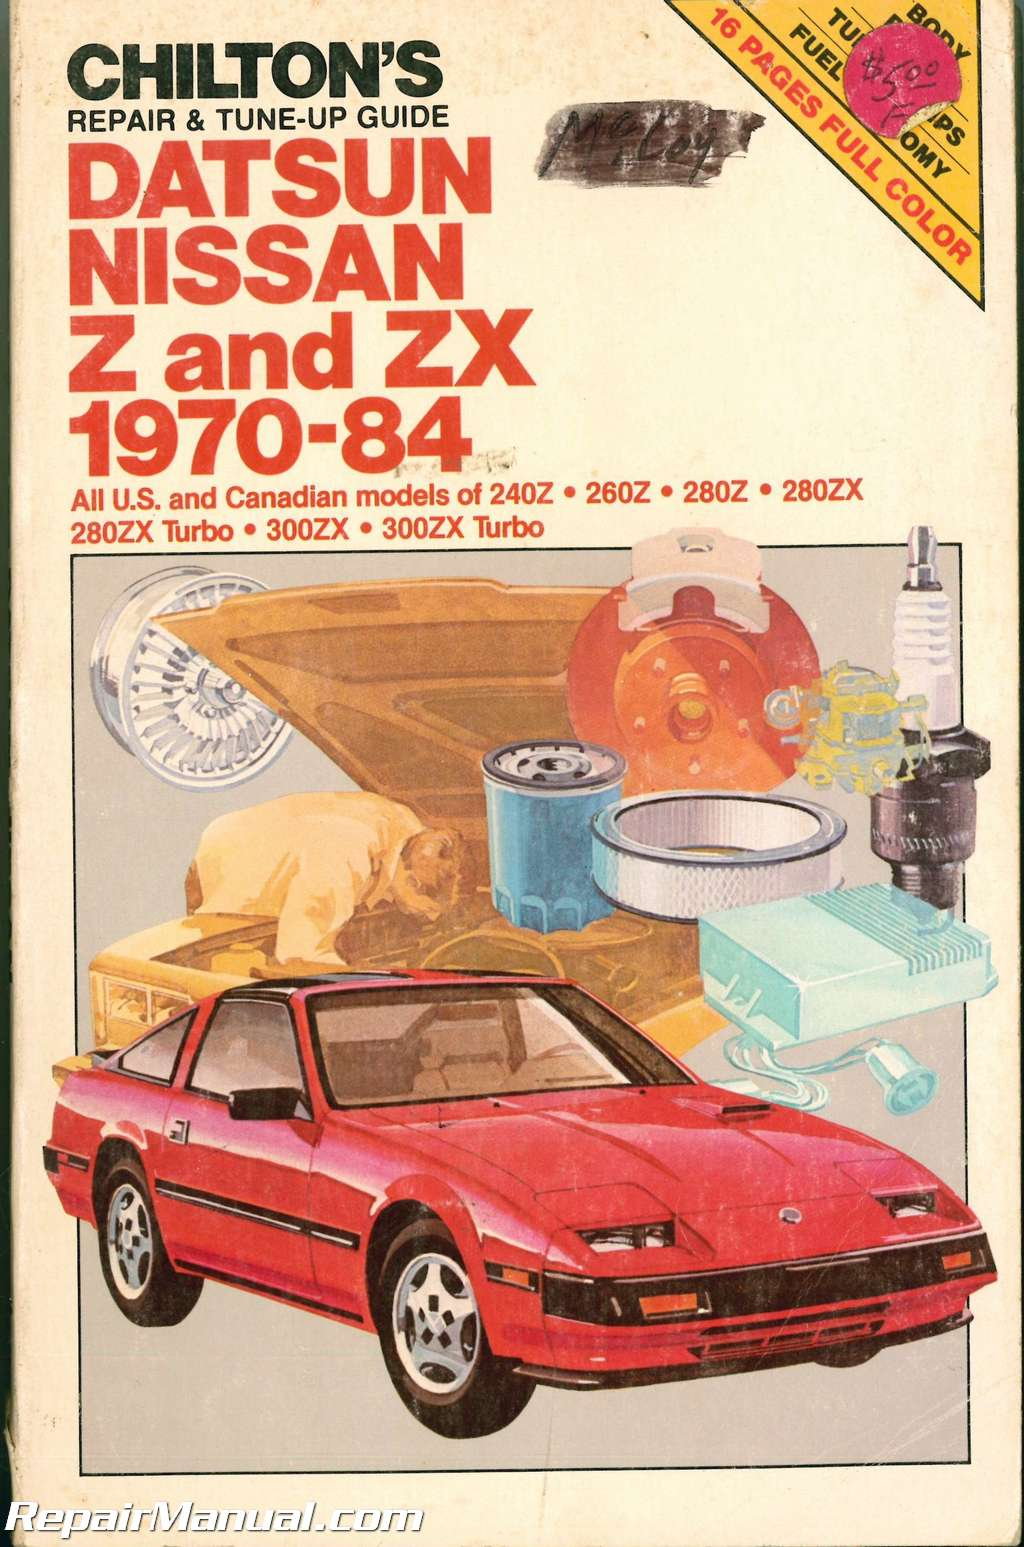 1970-1984-datsun-nissan-z-and-zx-repair-